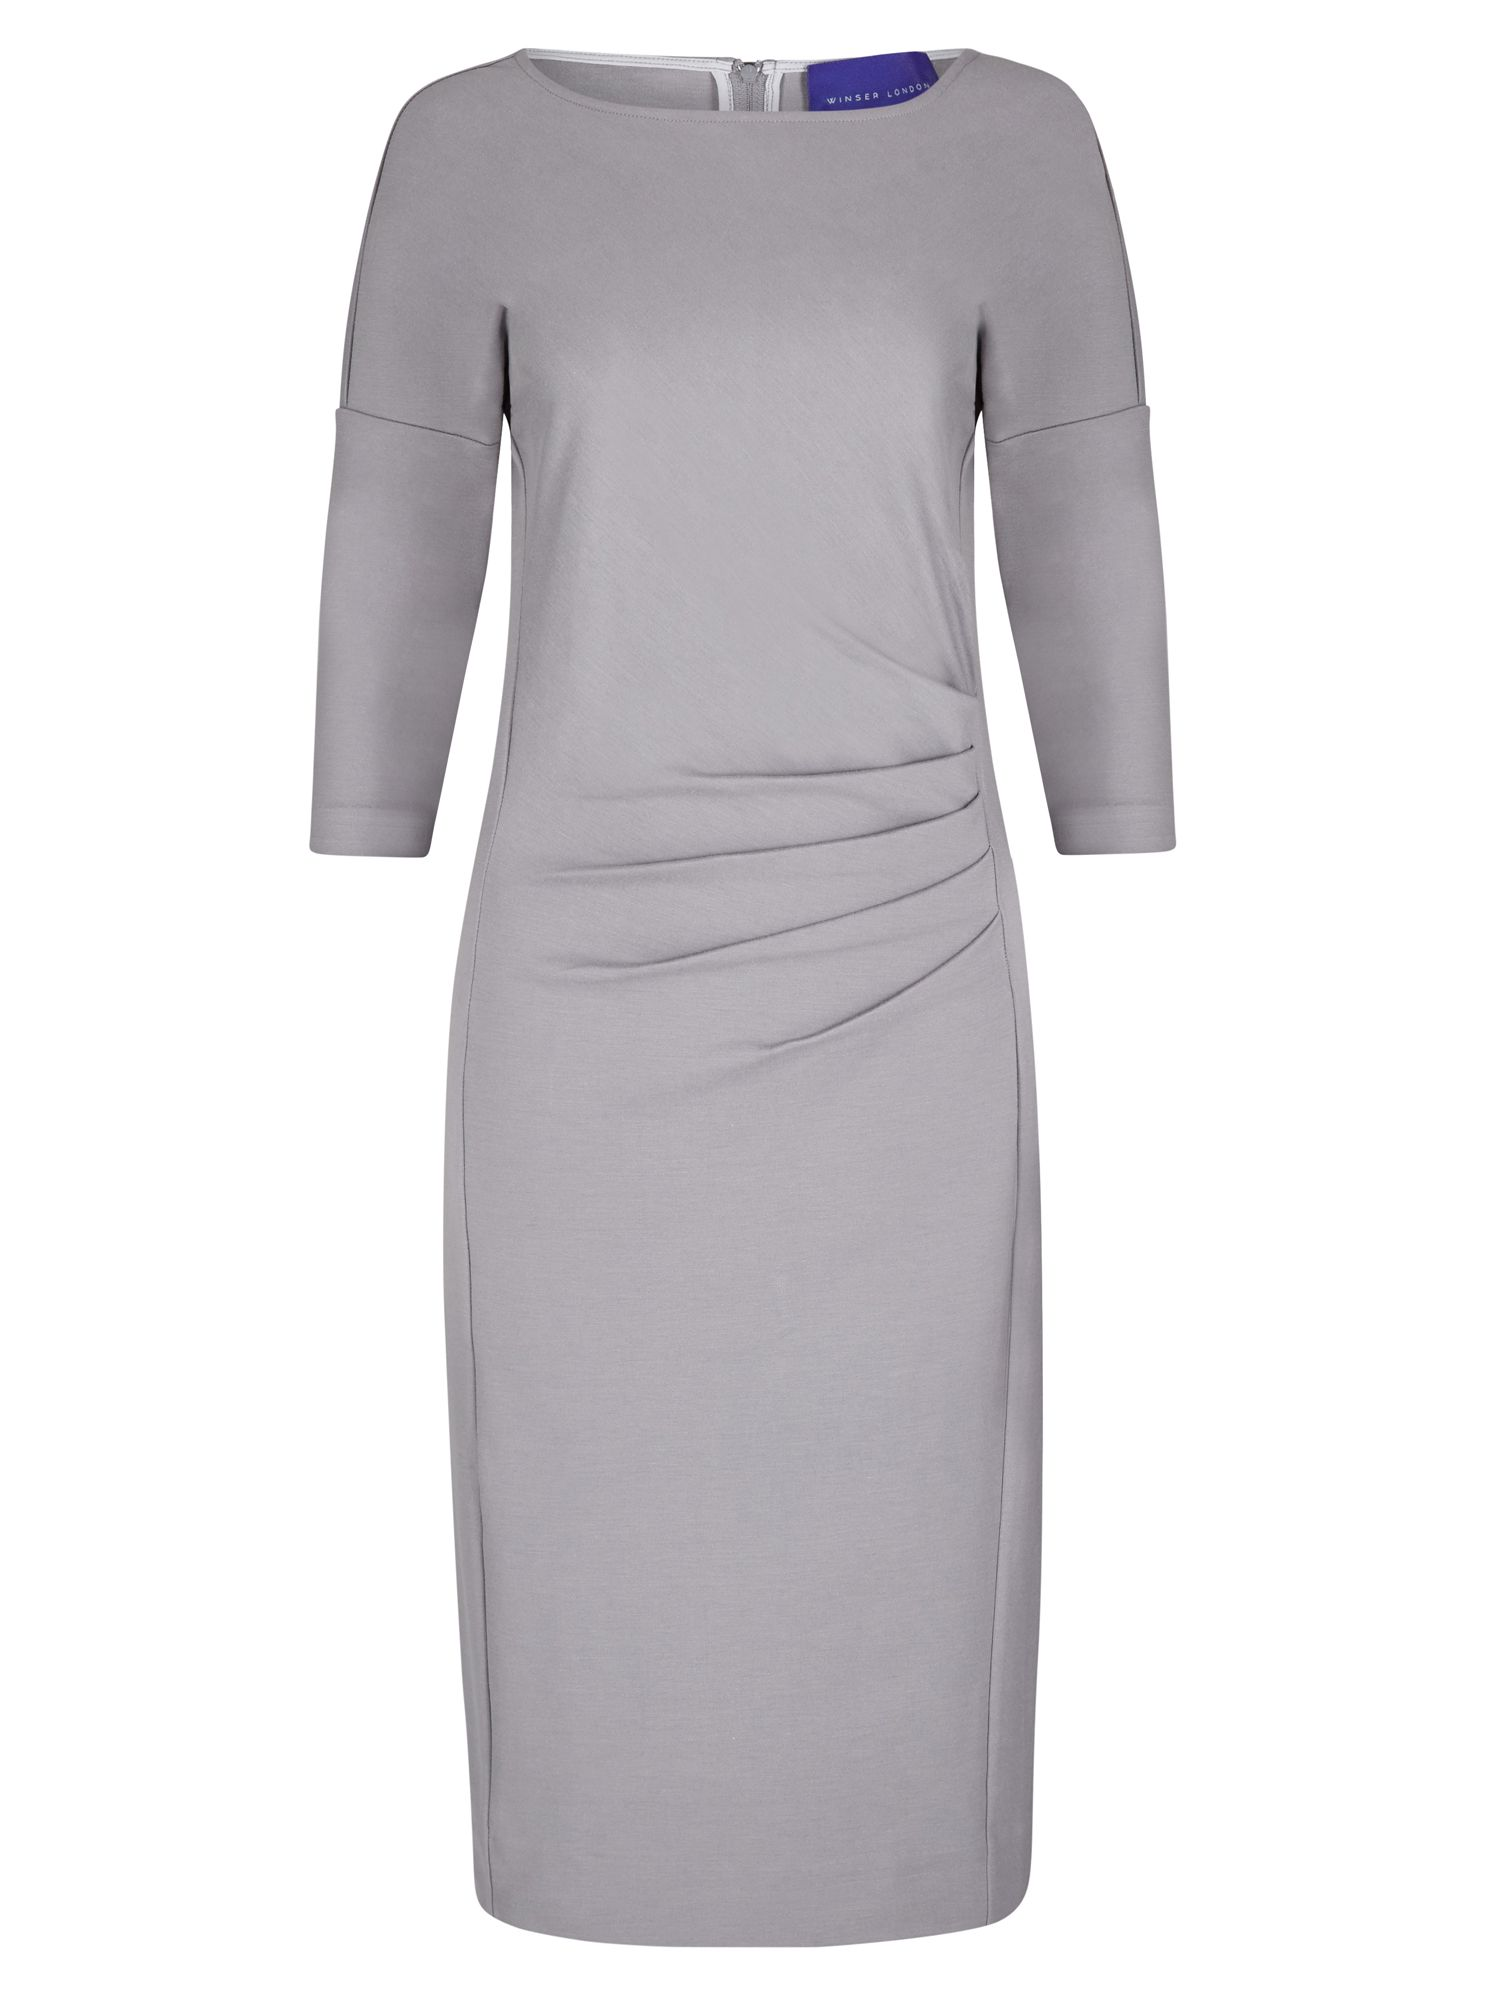 Winser London Miracle Dress, Grey